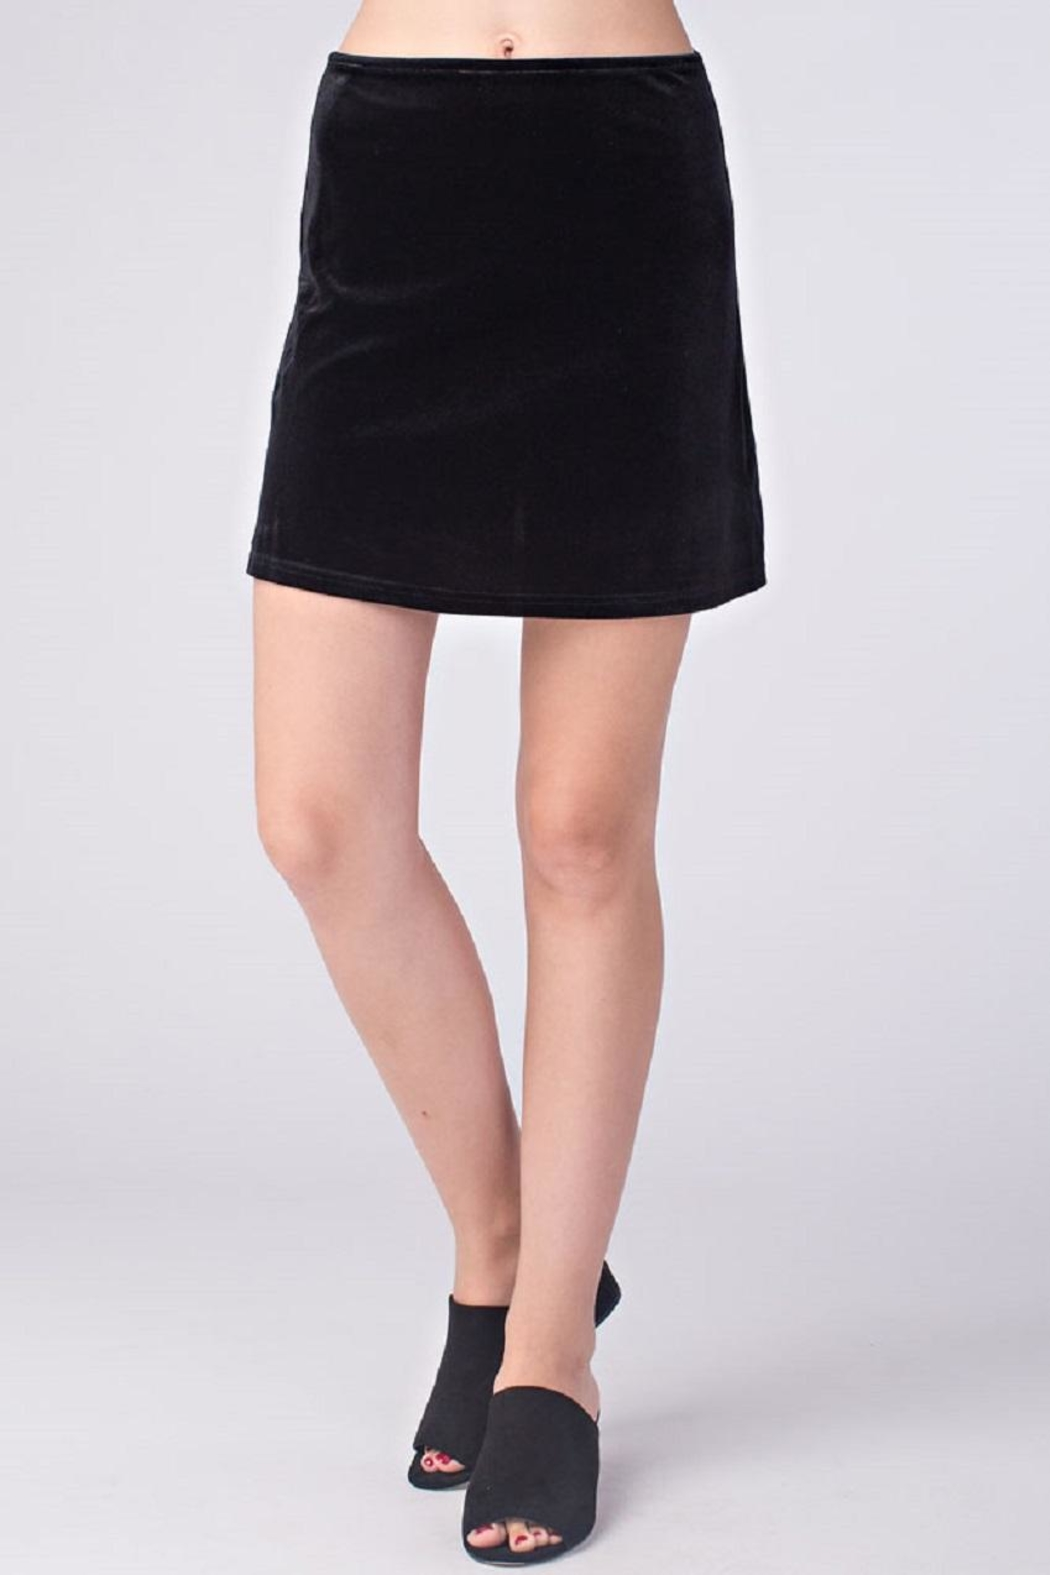 Honey Punch Black Velvet Skirt - Main Image